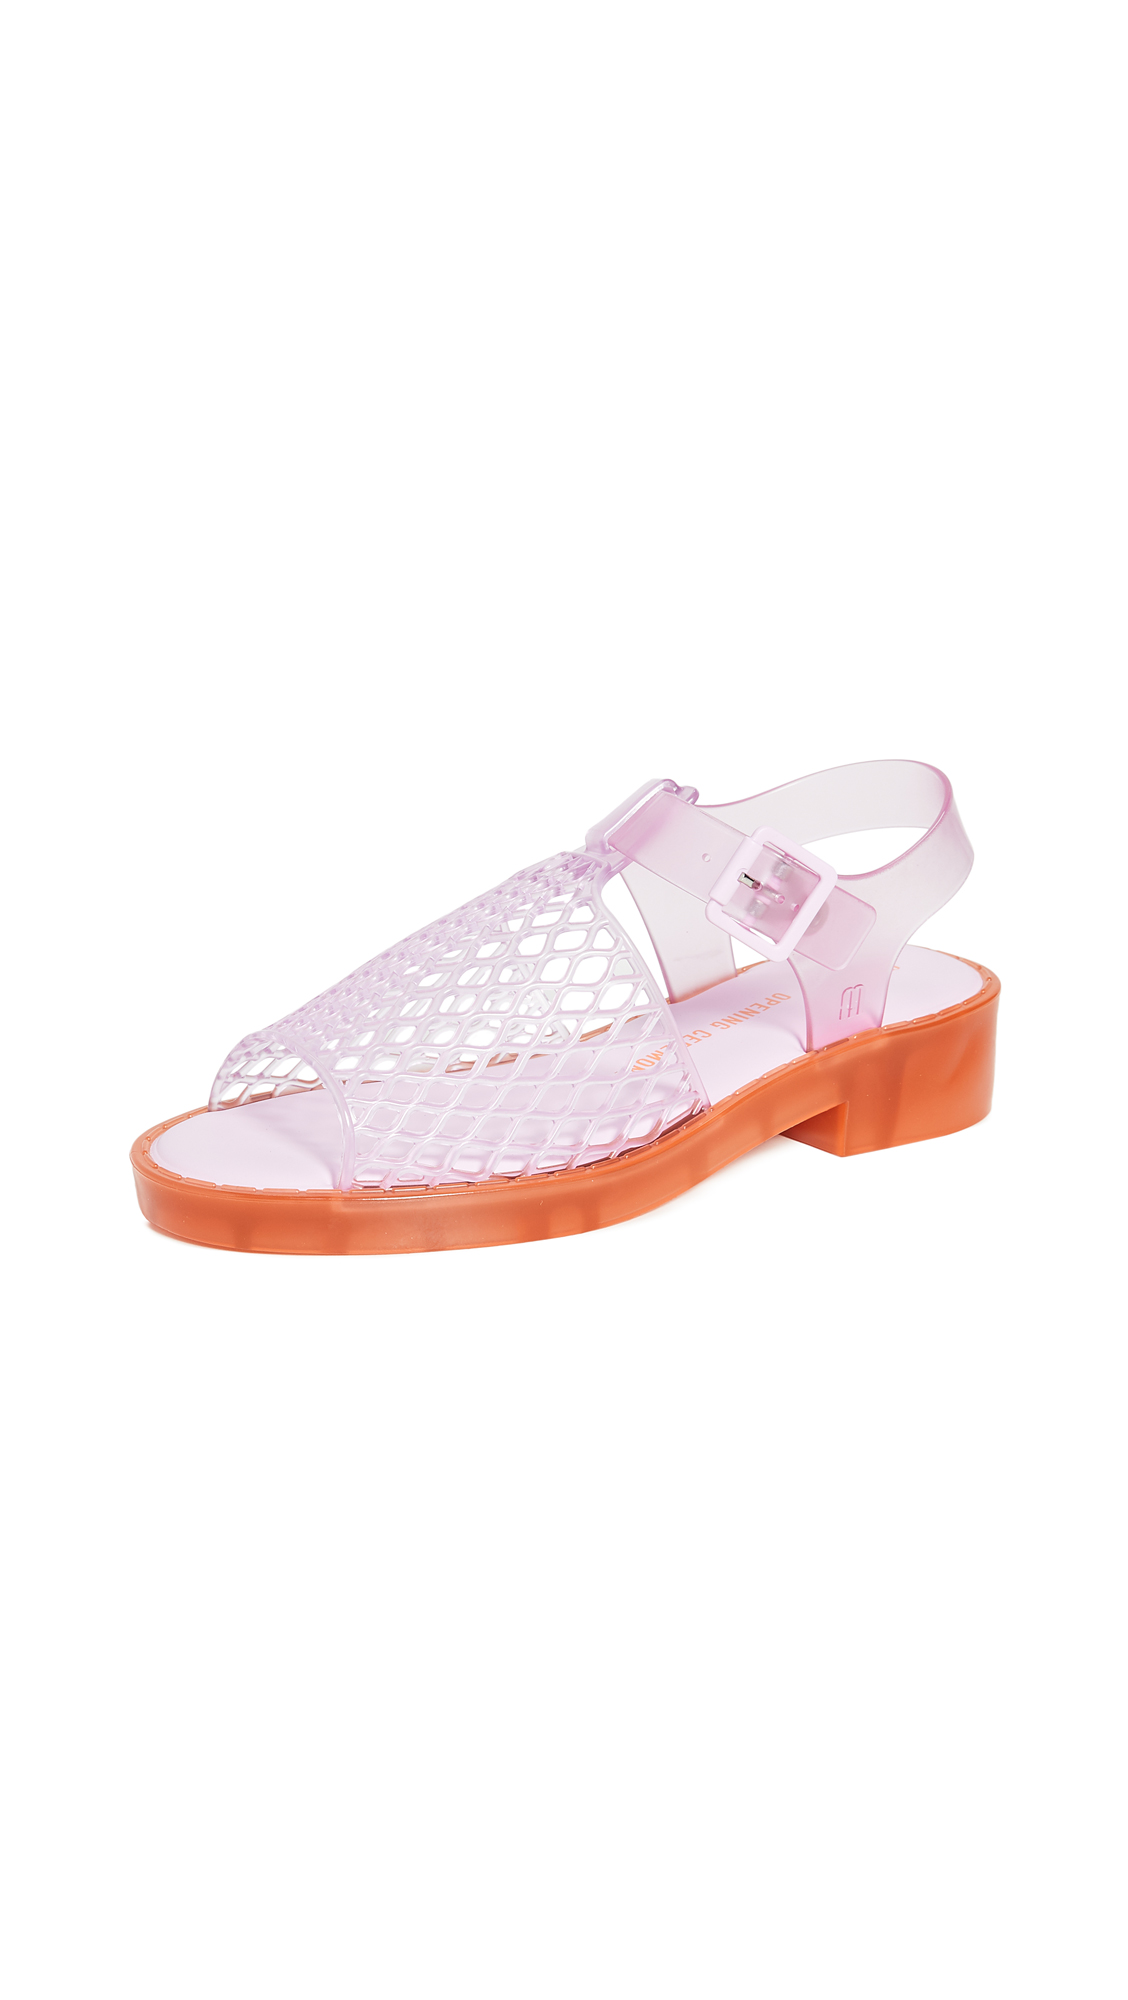 Melissa X Opening Ceremony Hatch Sandals - 50% Off Sale